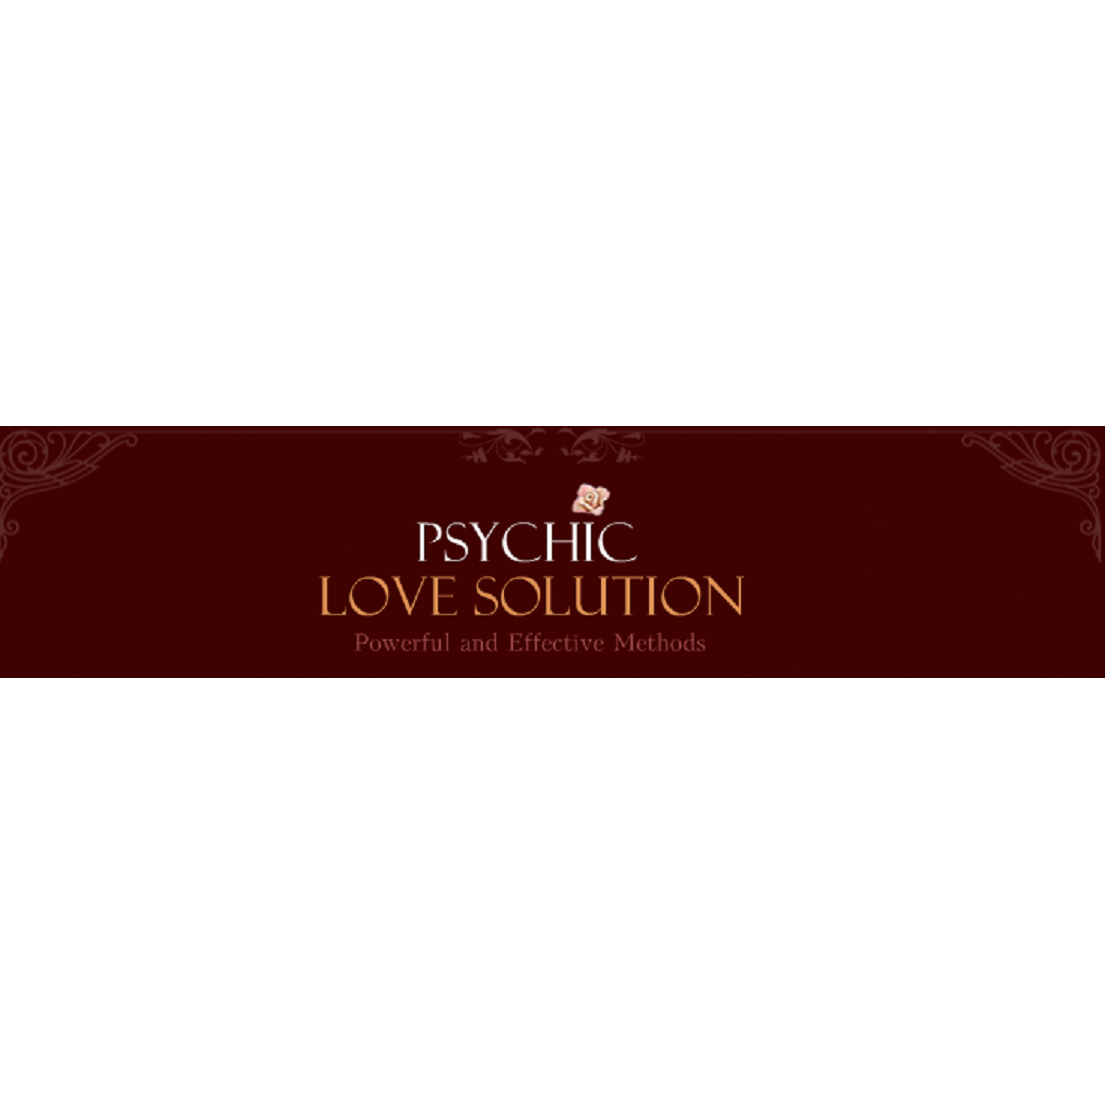 Psychic Love Solutions